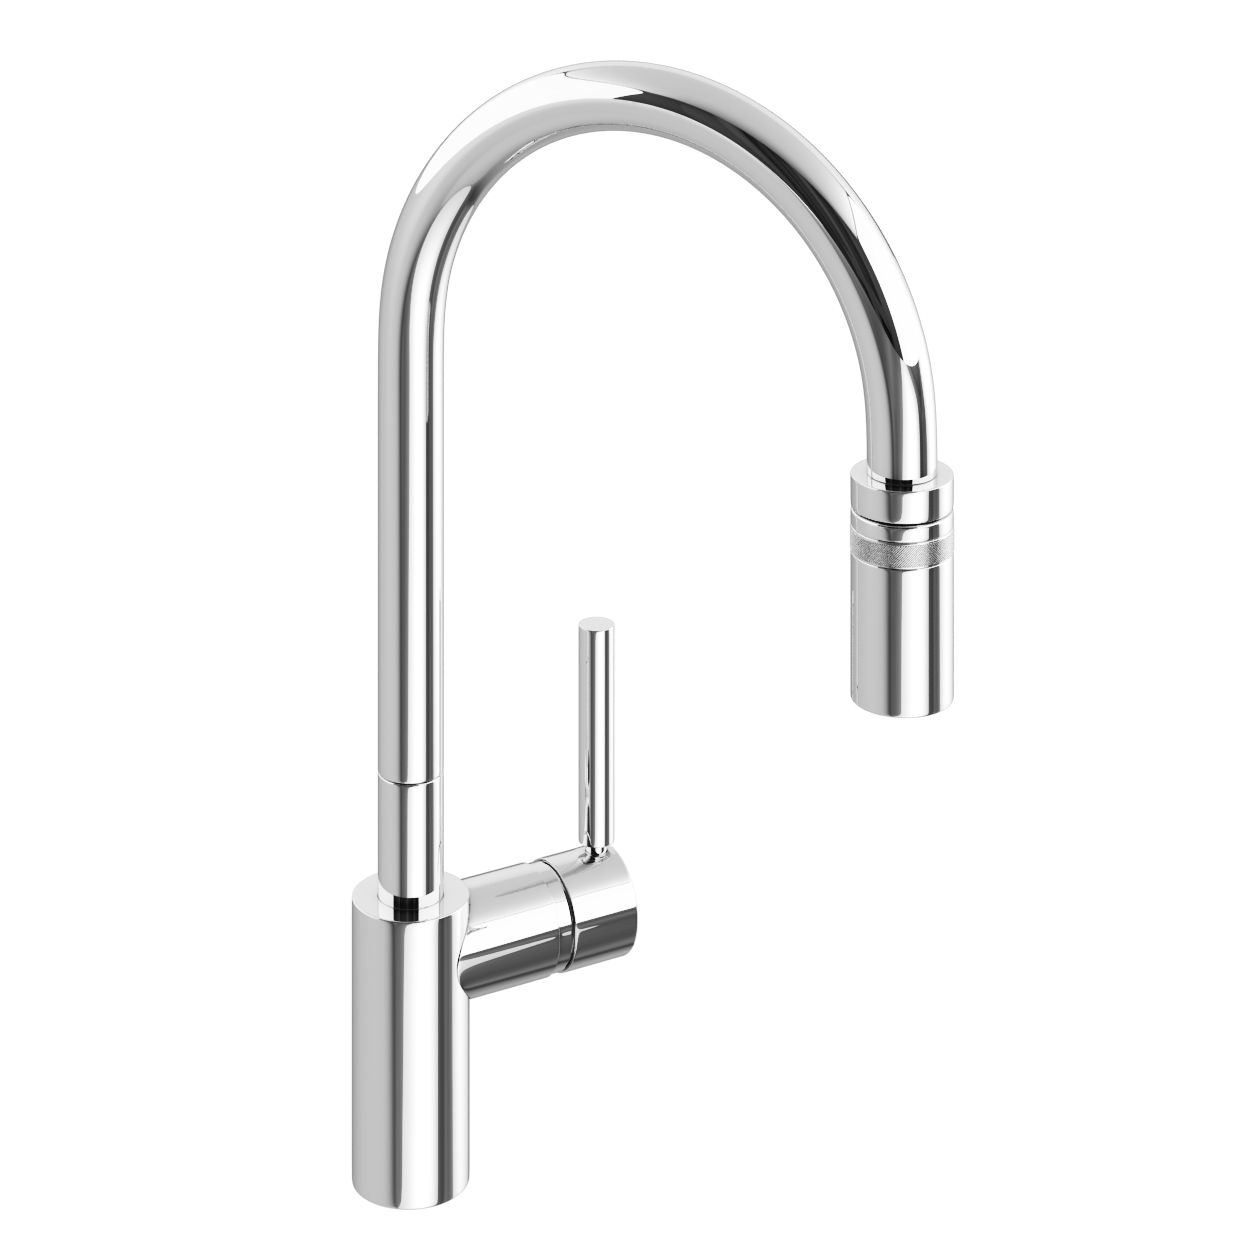 Designer Kitchen Mixer Taps